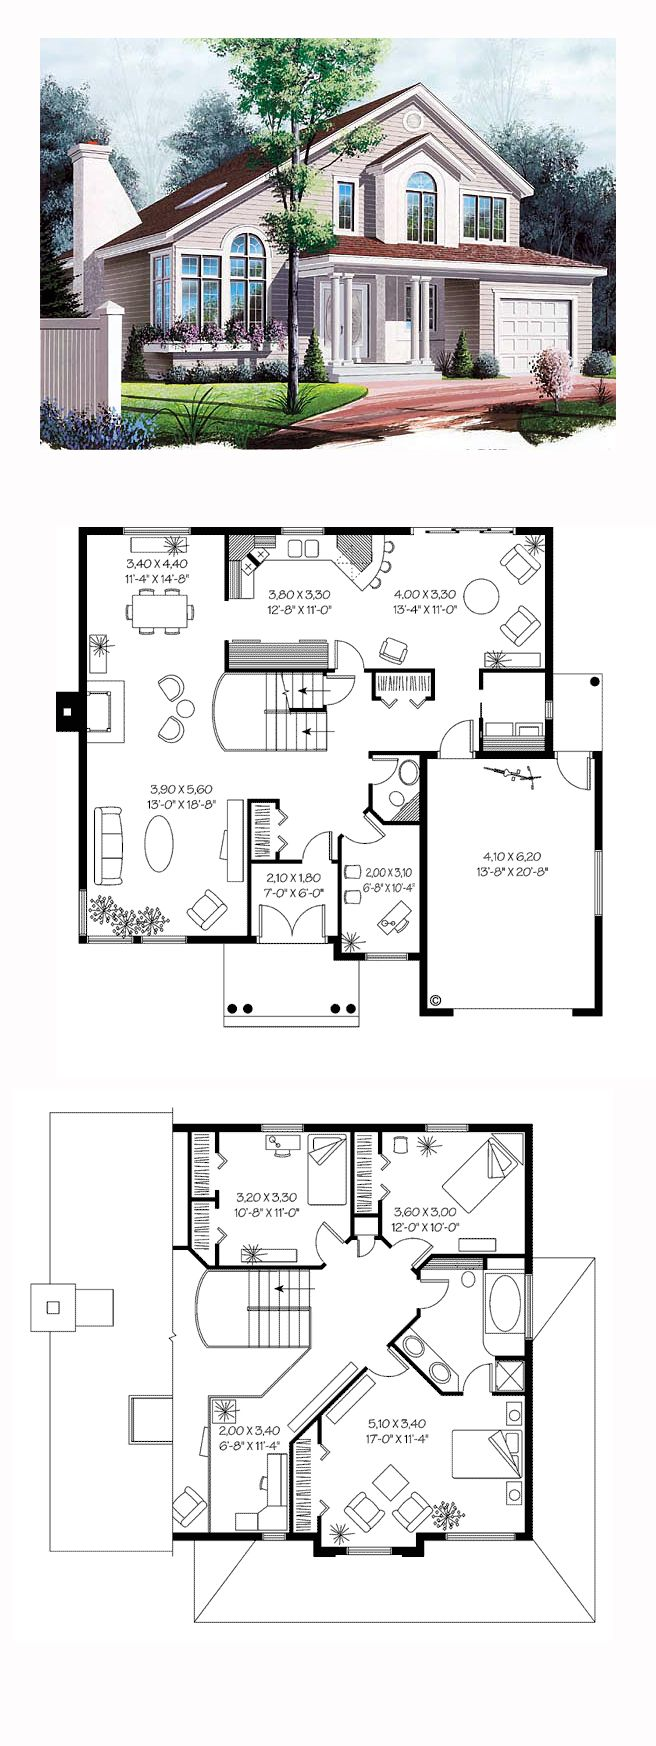 45 best saltbox house plans images on pinterest saltbox for Salt box house plans